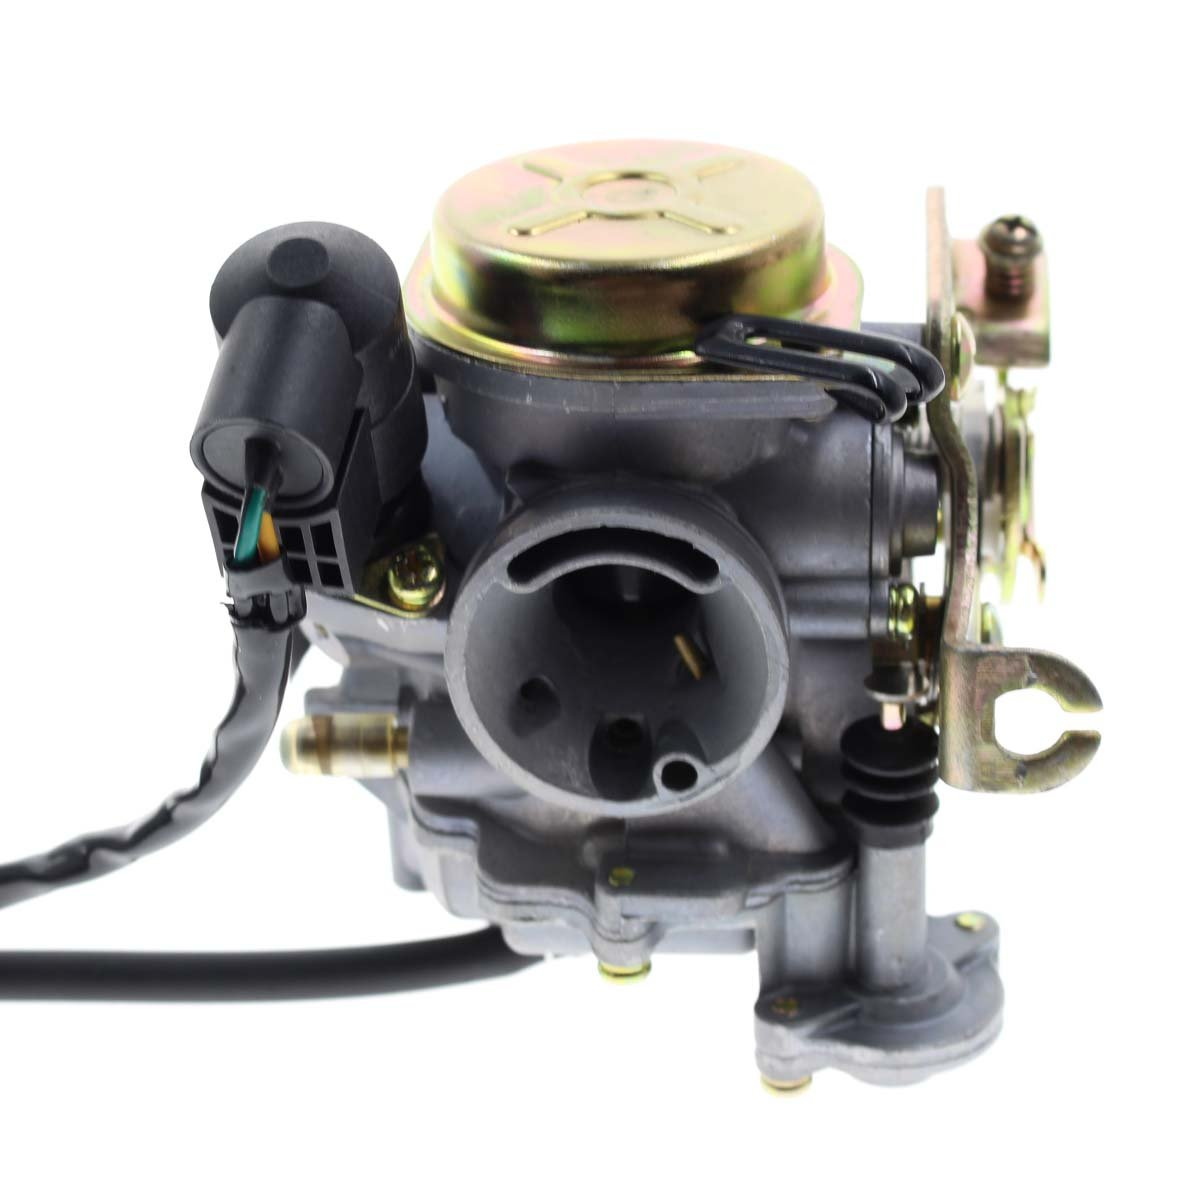 Carbhub GY6 50cc Carburetor for GY6 49cc 50cc Four Stroke Chinese Scooter Moped Taotao Kymco Carbour